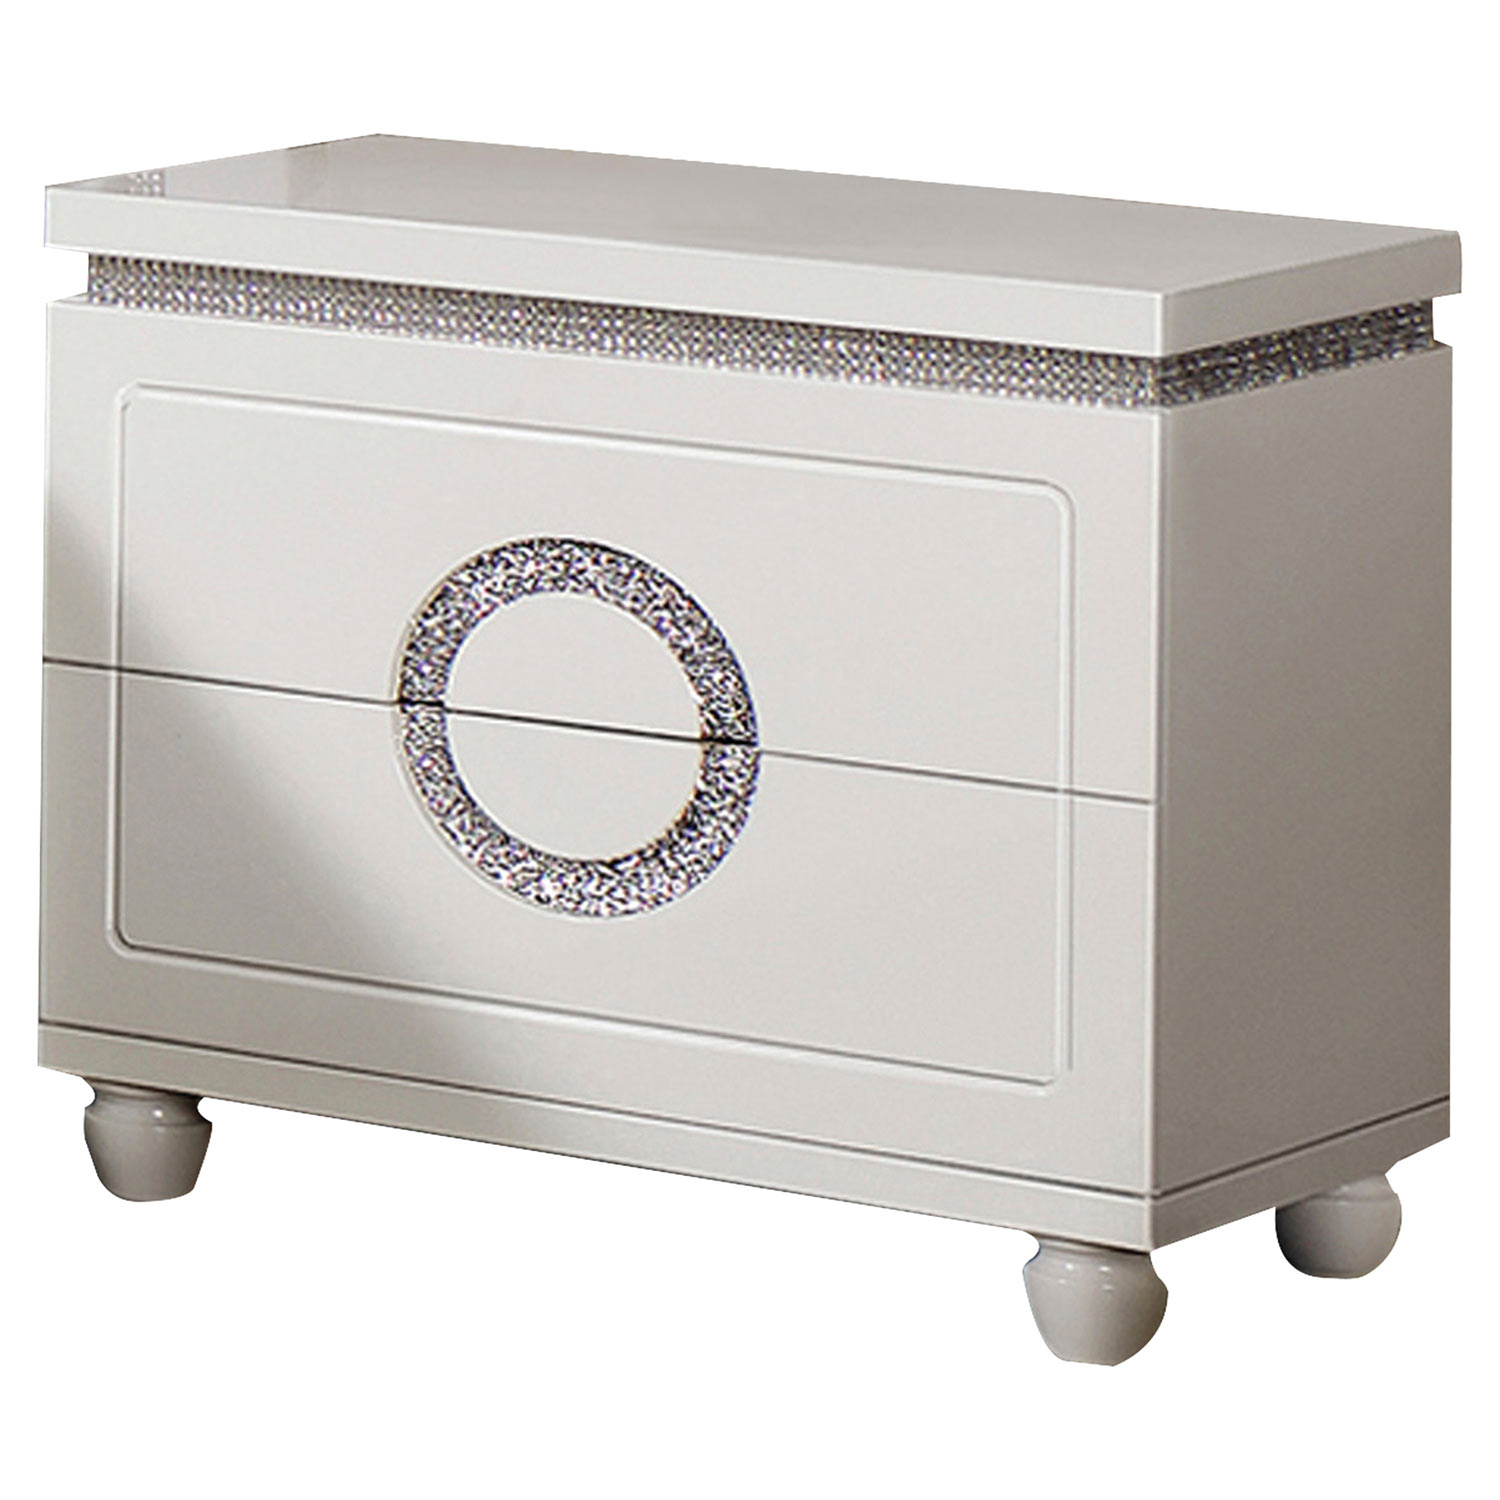 Acme Vivaldi Nightstand - White High Gloss